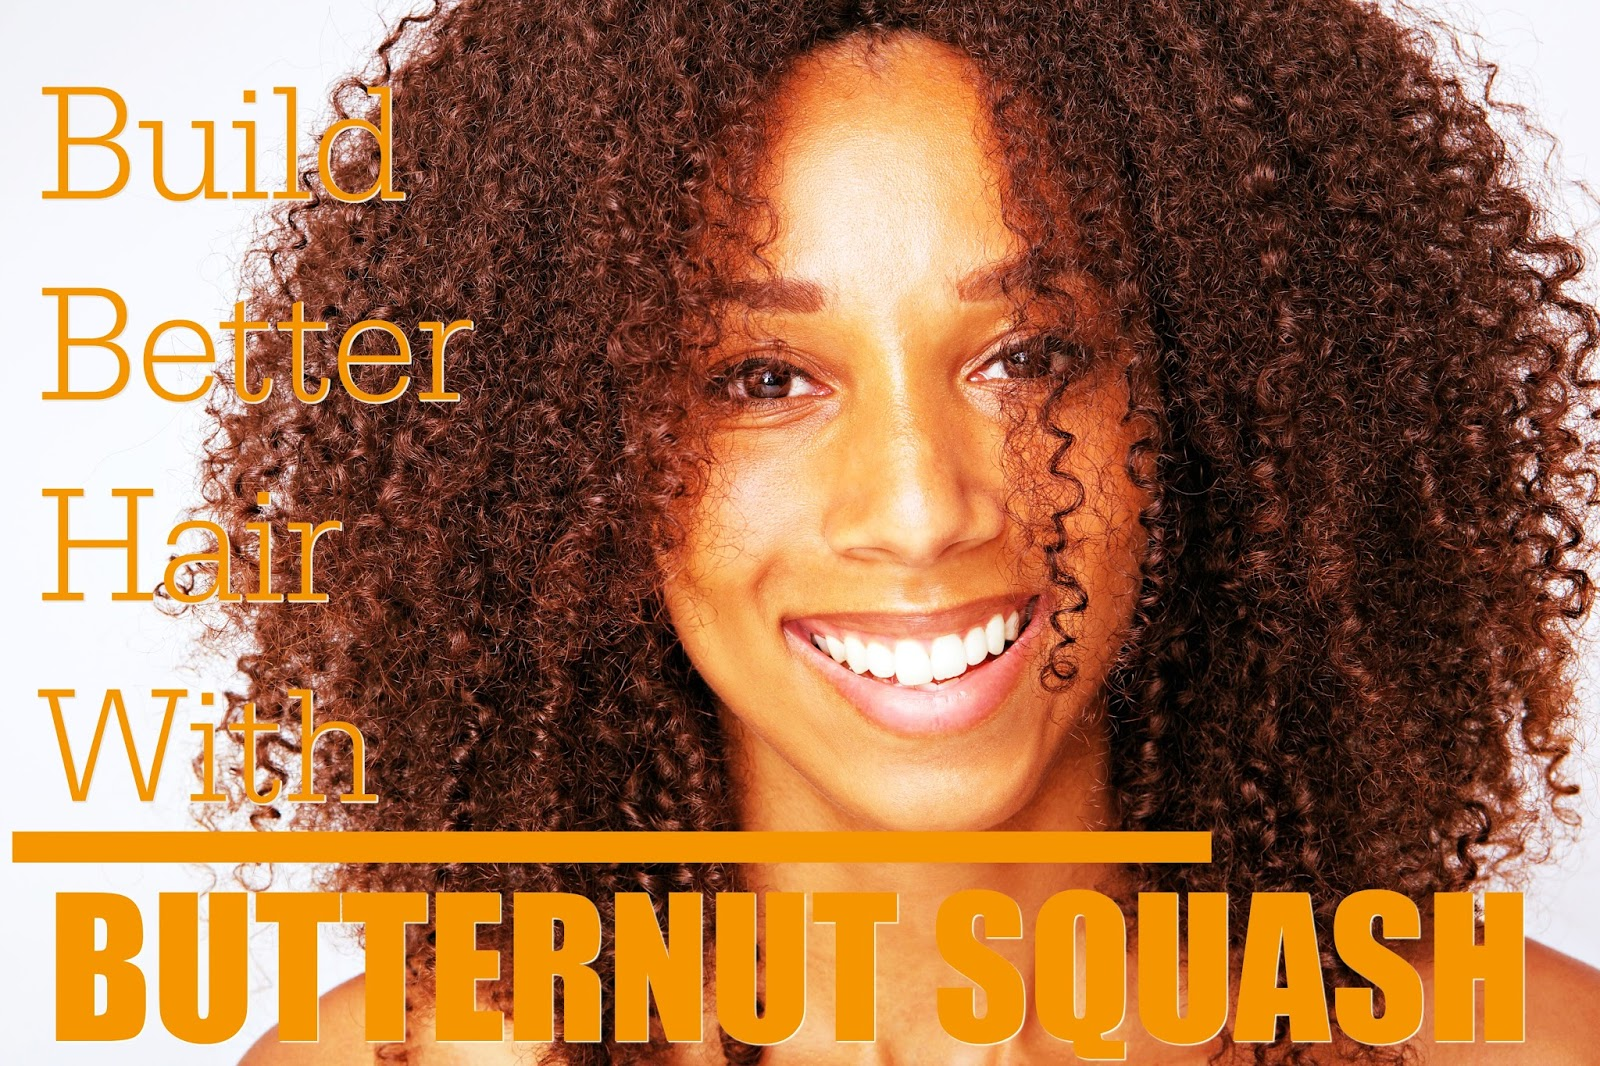 Squash Hair Mask is the perfect way to get your hair back on track this spring. This Butternut Squash Deep Conditioner will reinvigorate your strands.